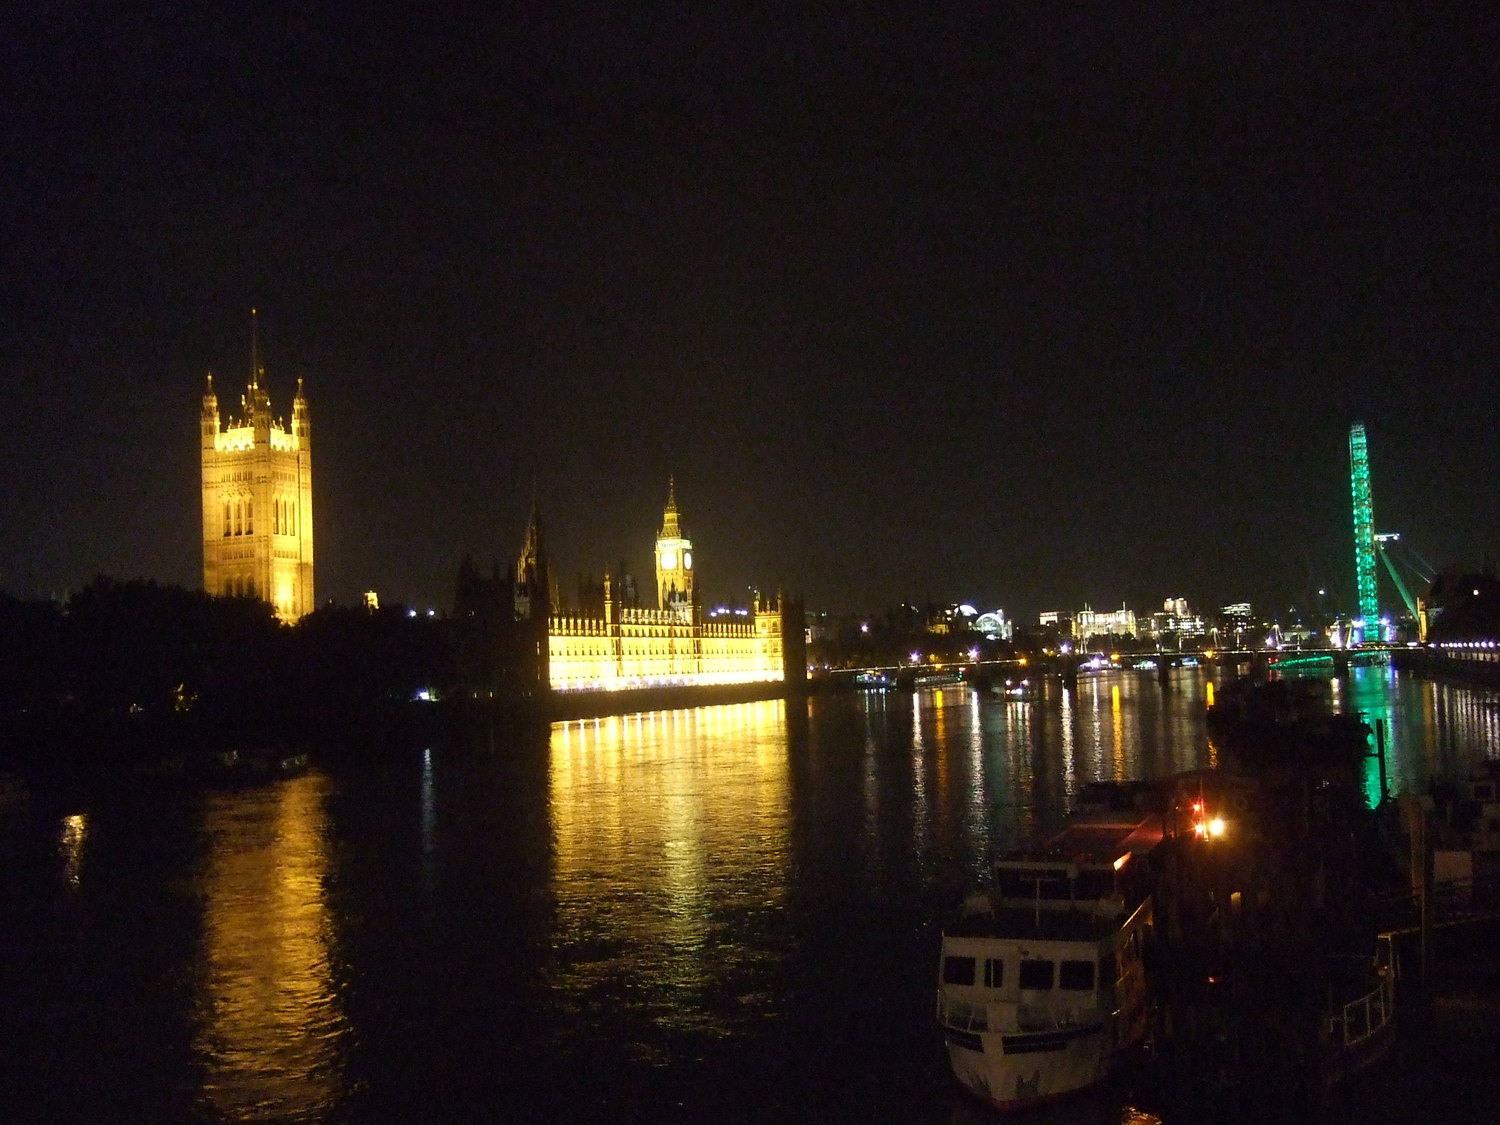 06_London_Wesminster_Palace_at_night